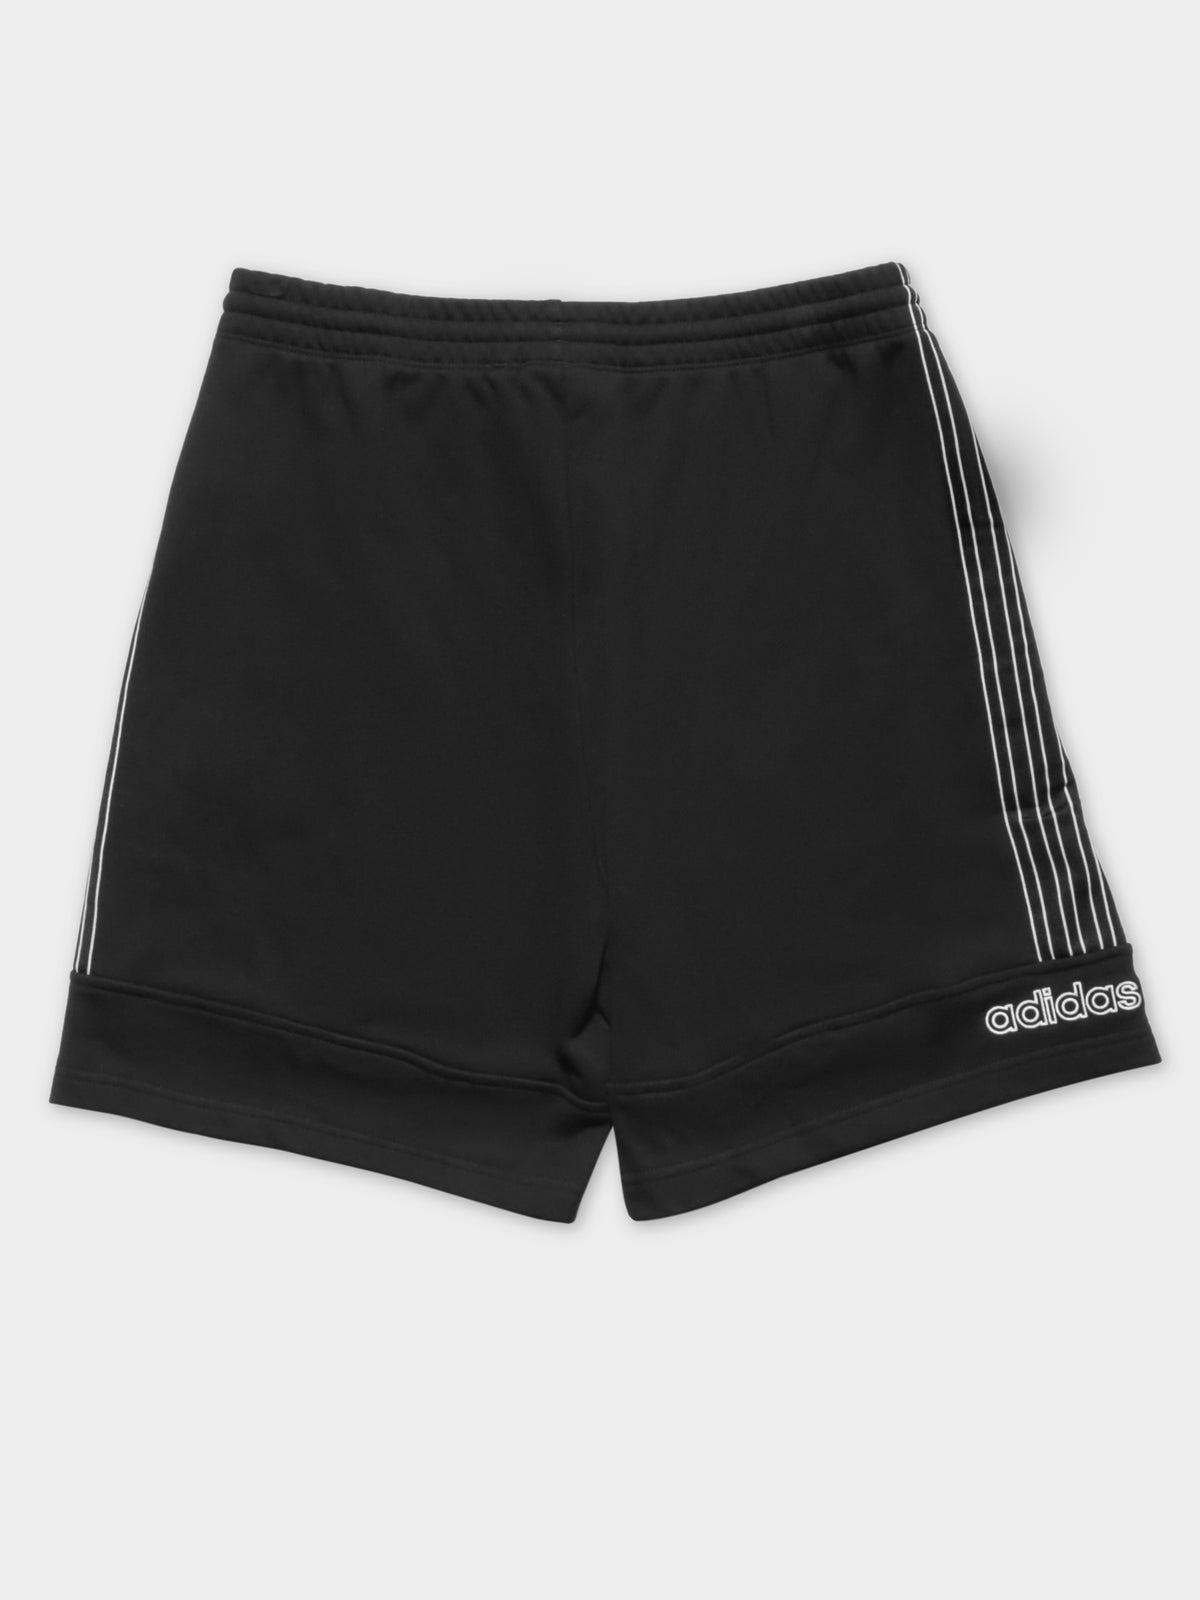 Sports Sweat Shorts in Black & White